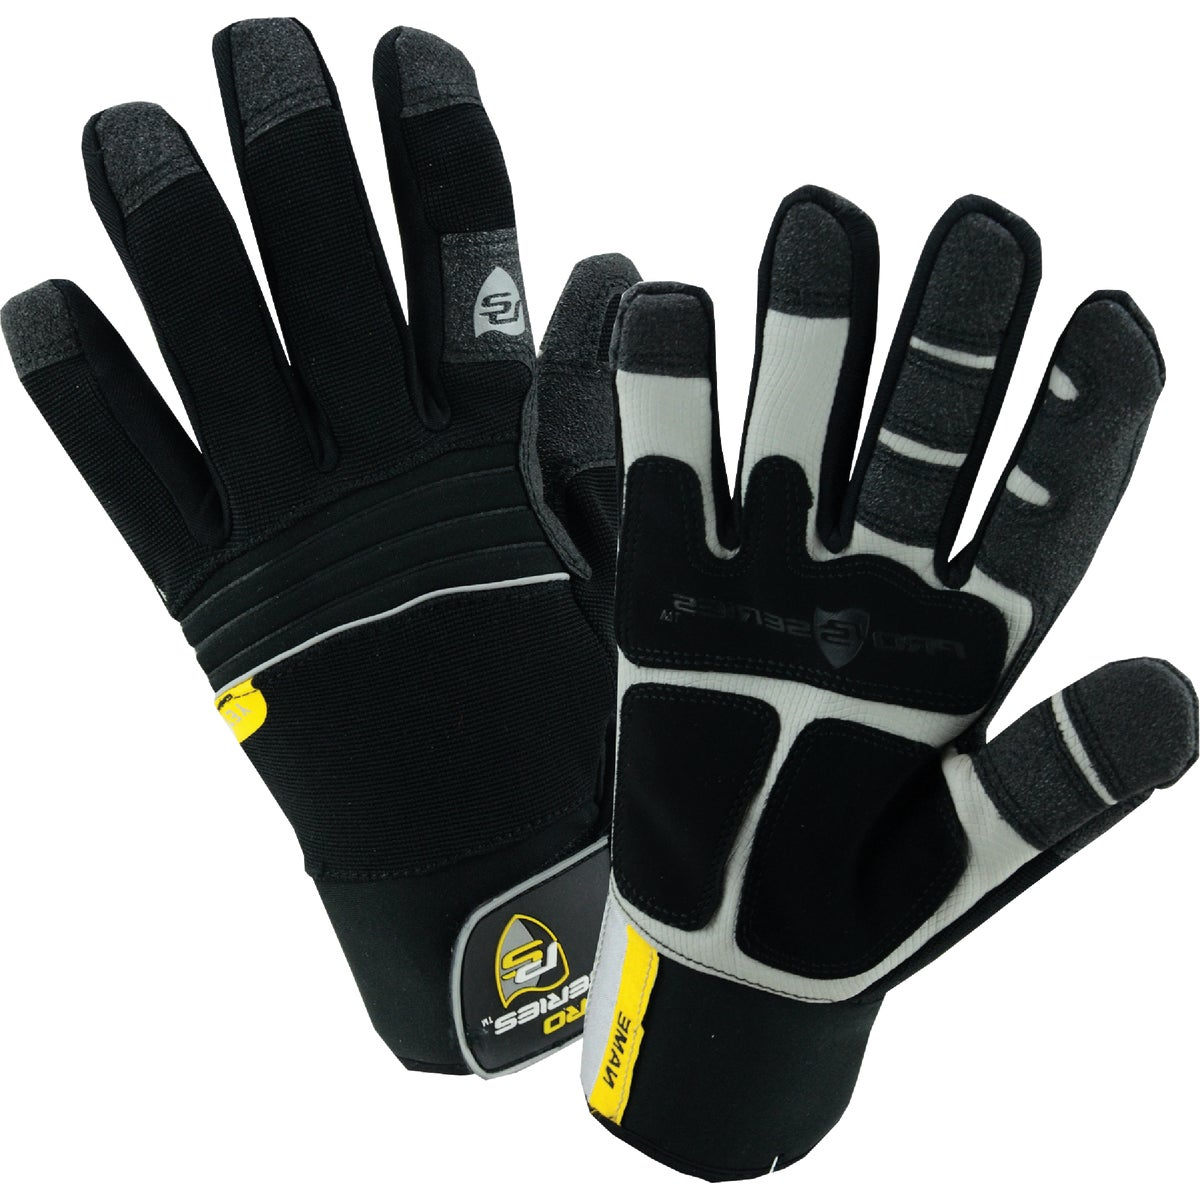 XL COLD WEATHER GLOVE - CCG2-05-XL by Ironclad Performance